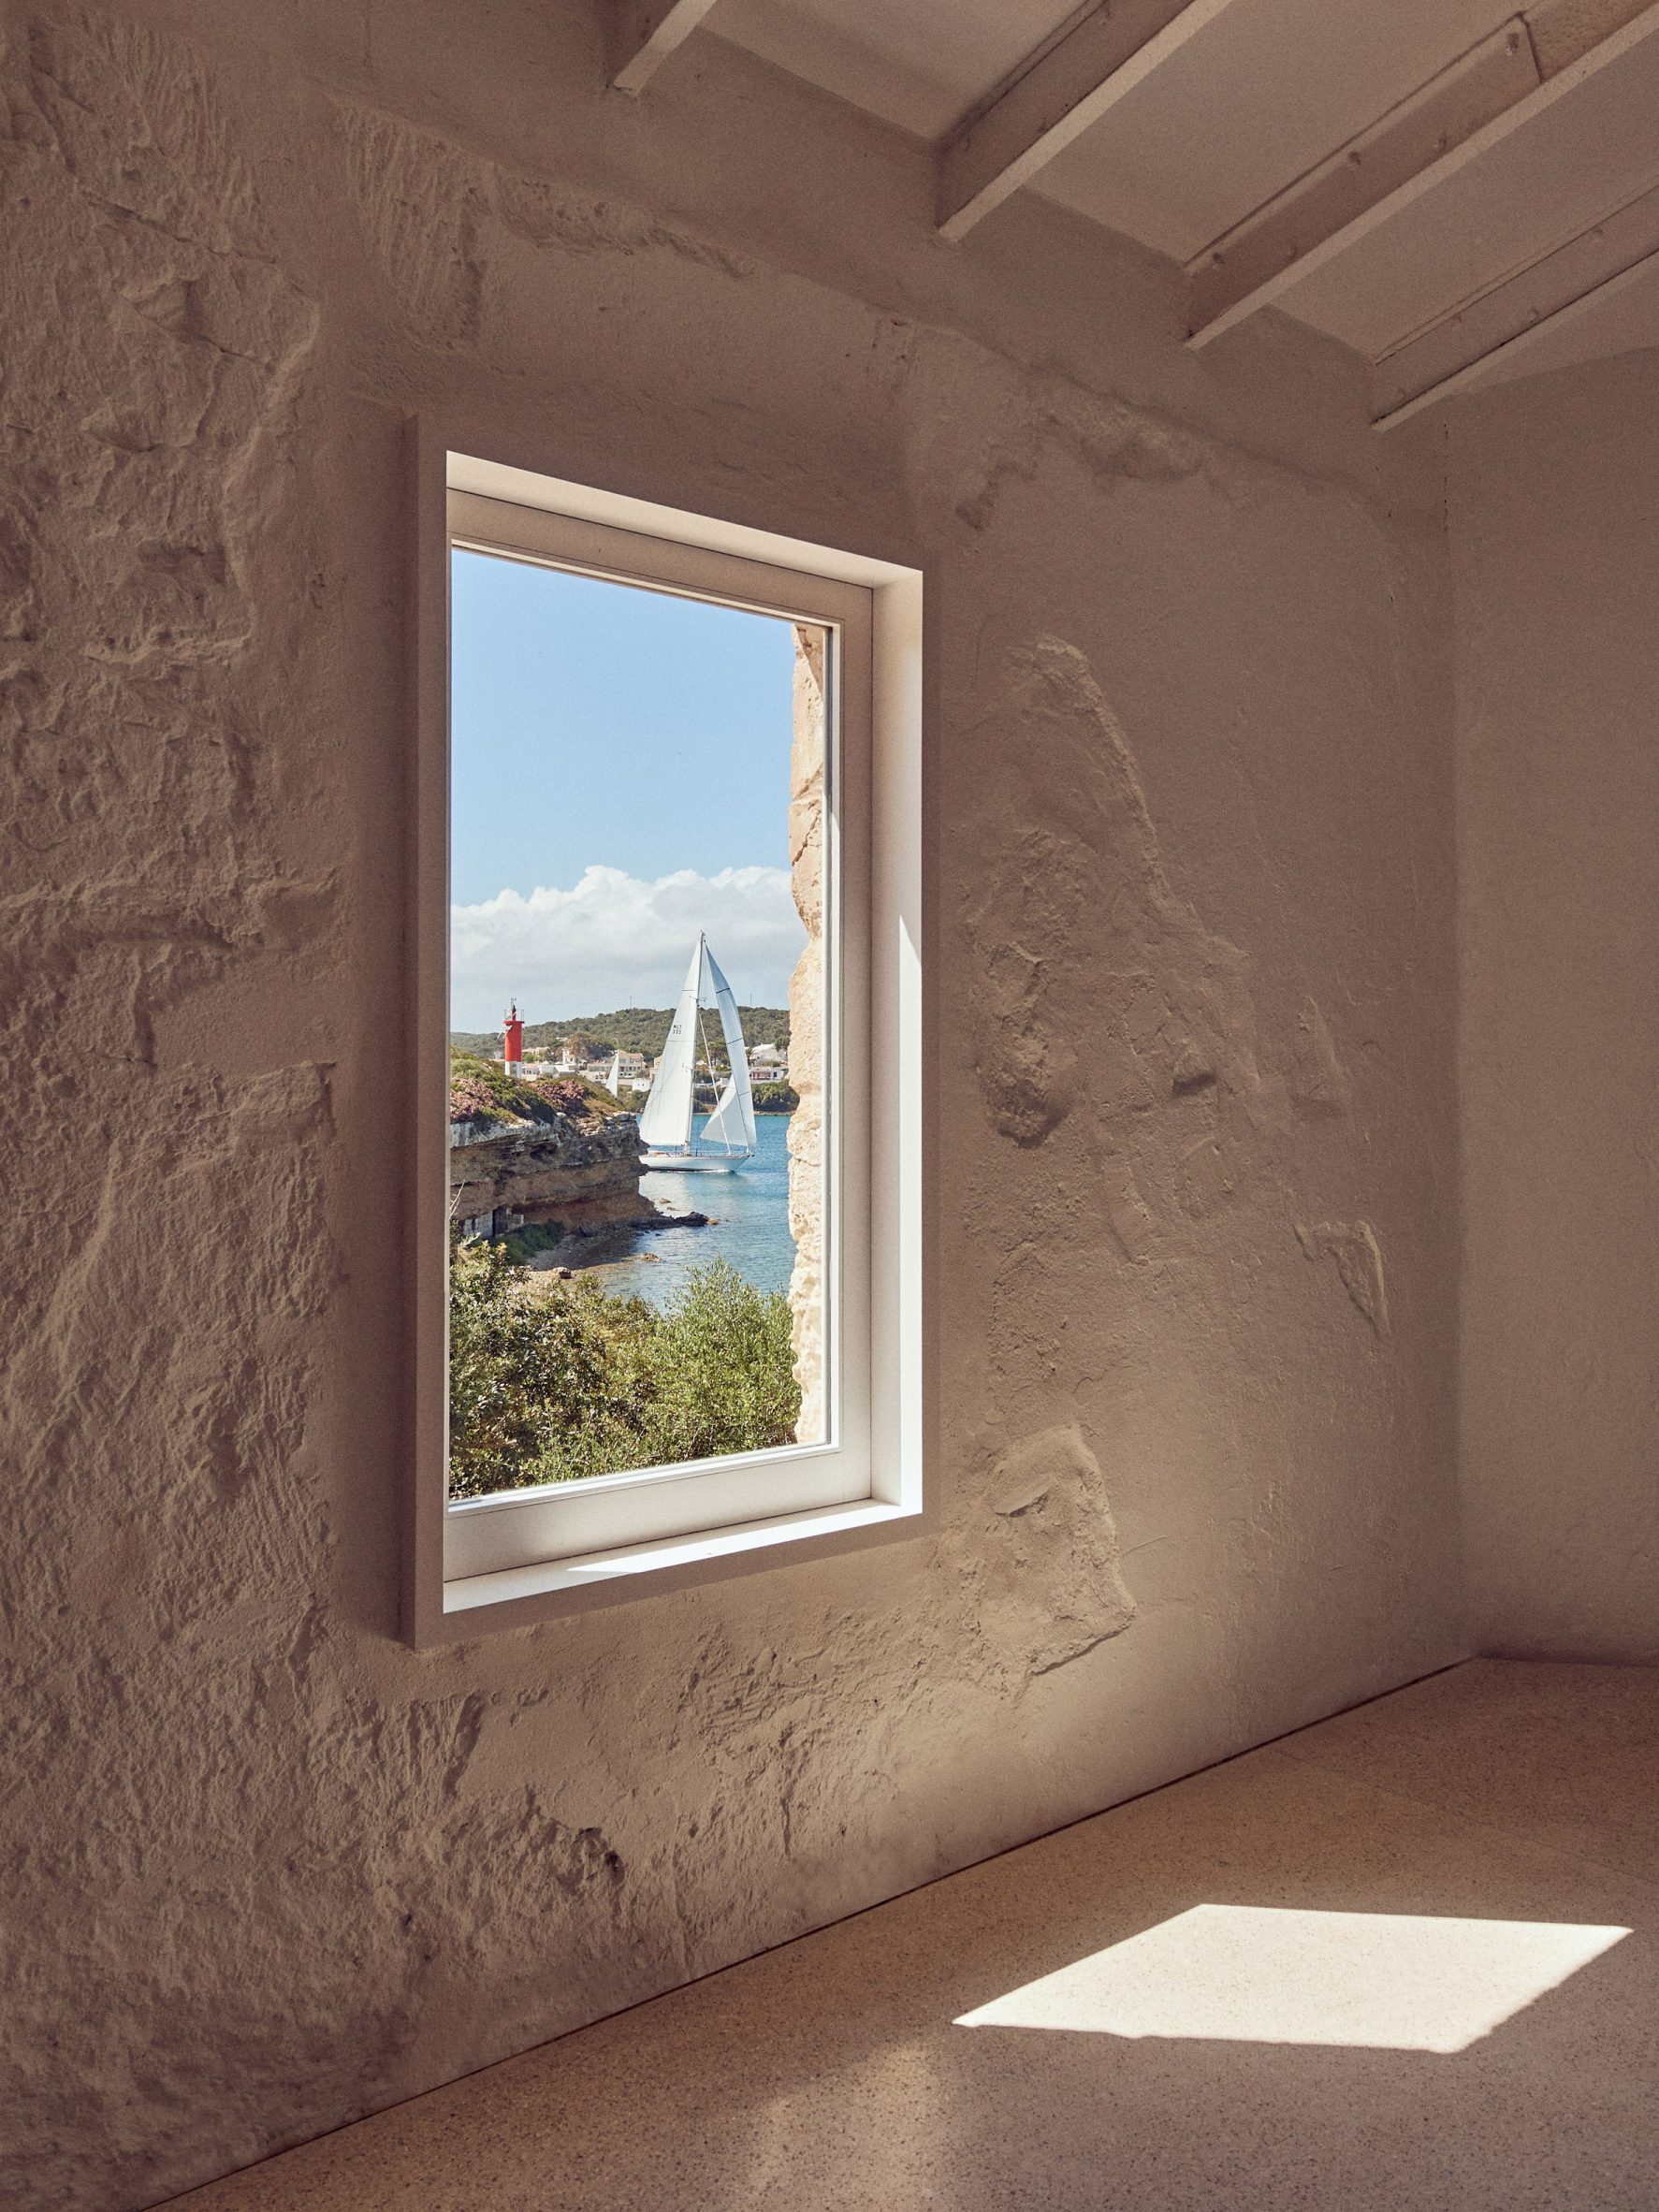 Laplace left walls unrendered at Hauser & Wirth Menorca